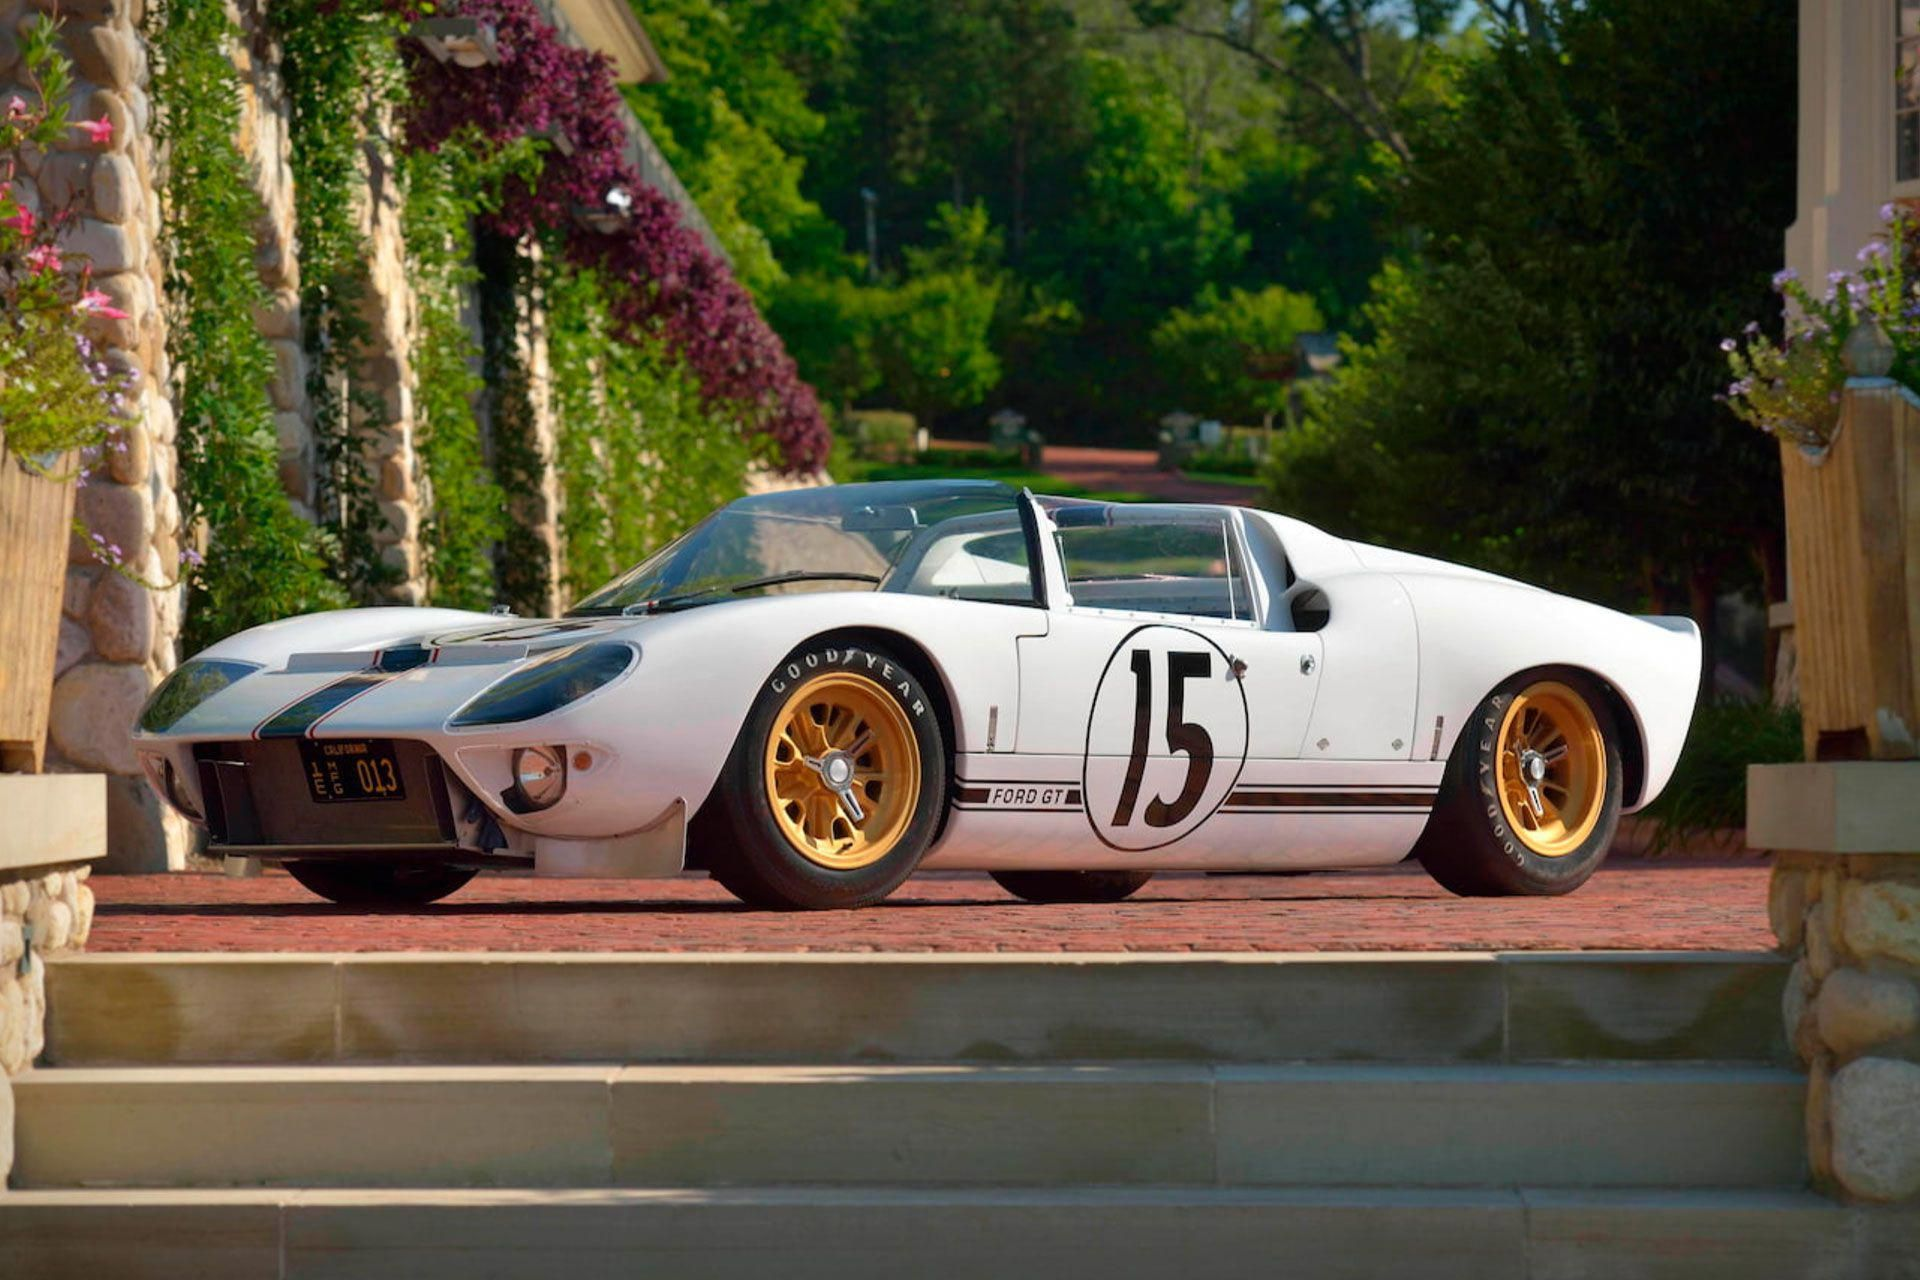 From 1966 To 1969 The Ford Gt40 Dominated The 24 Hours Of Le Mans